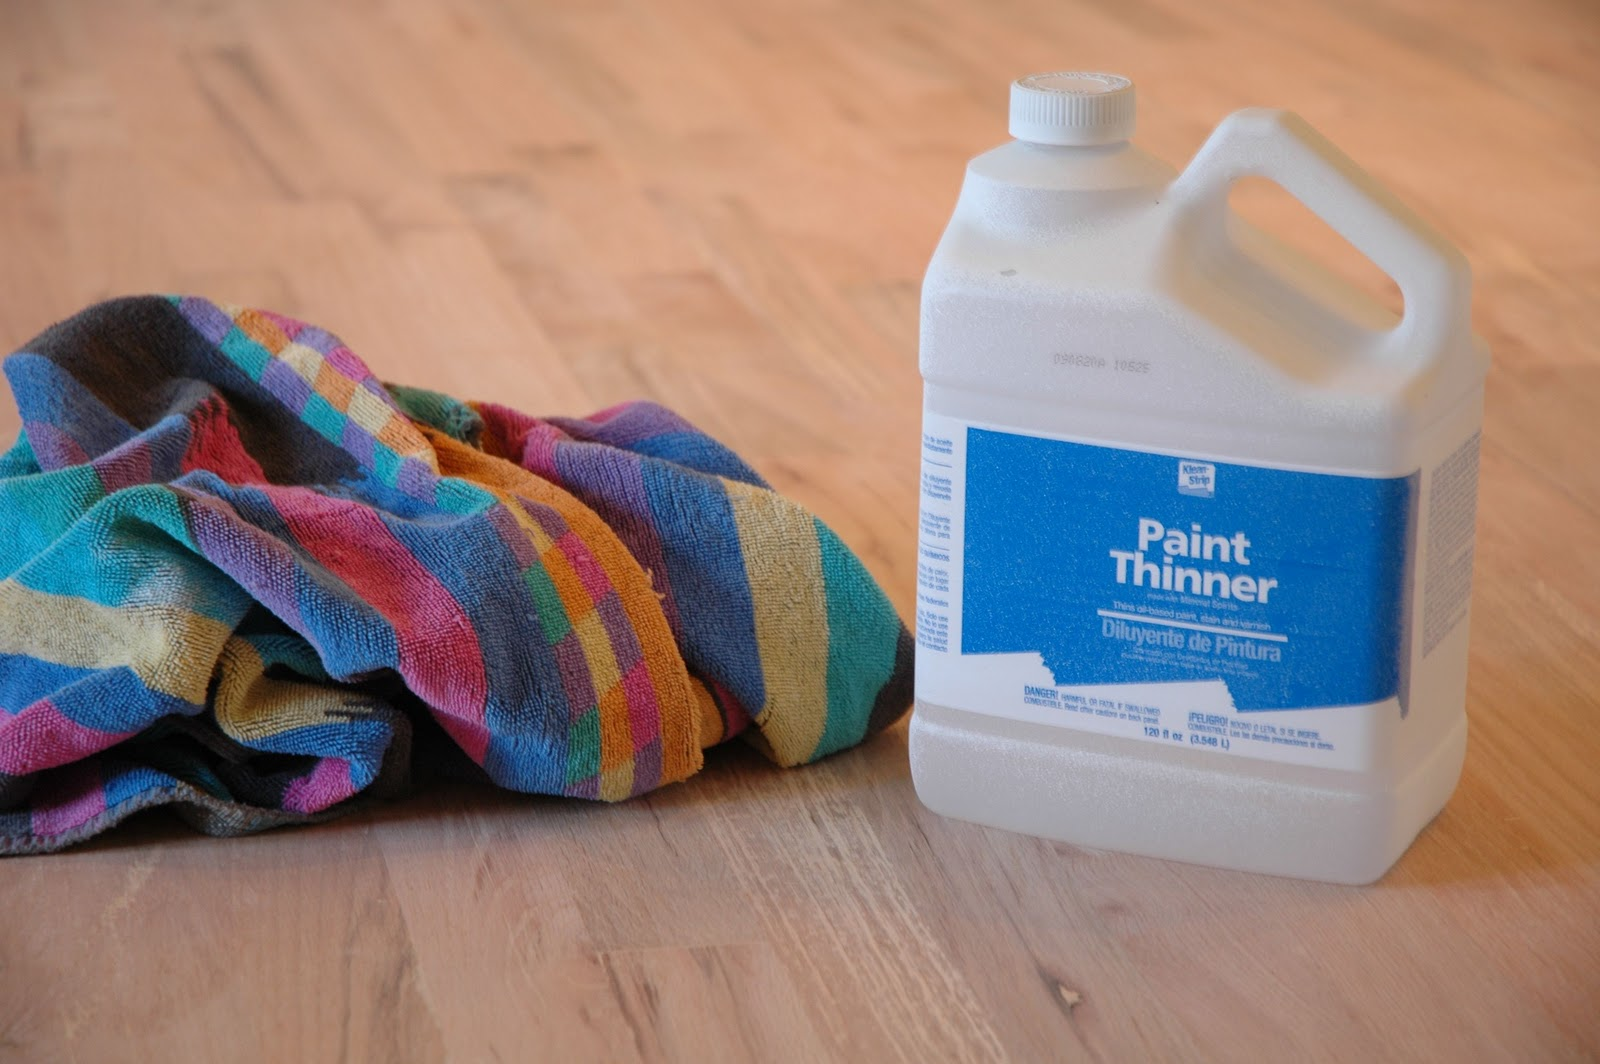 How To Apply Paint Thinner On Walls